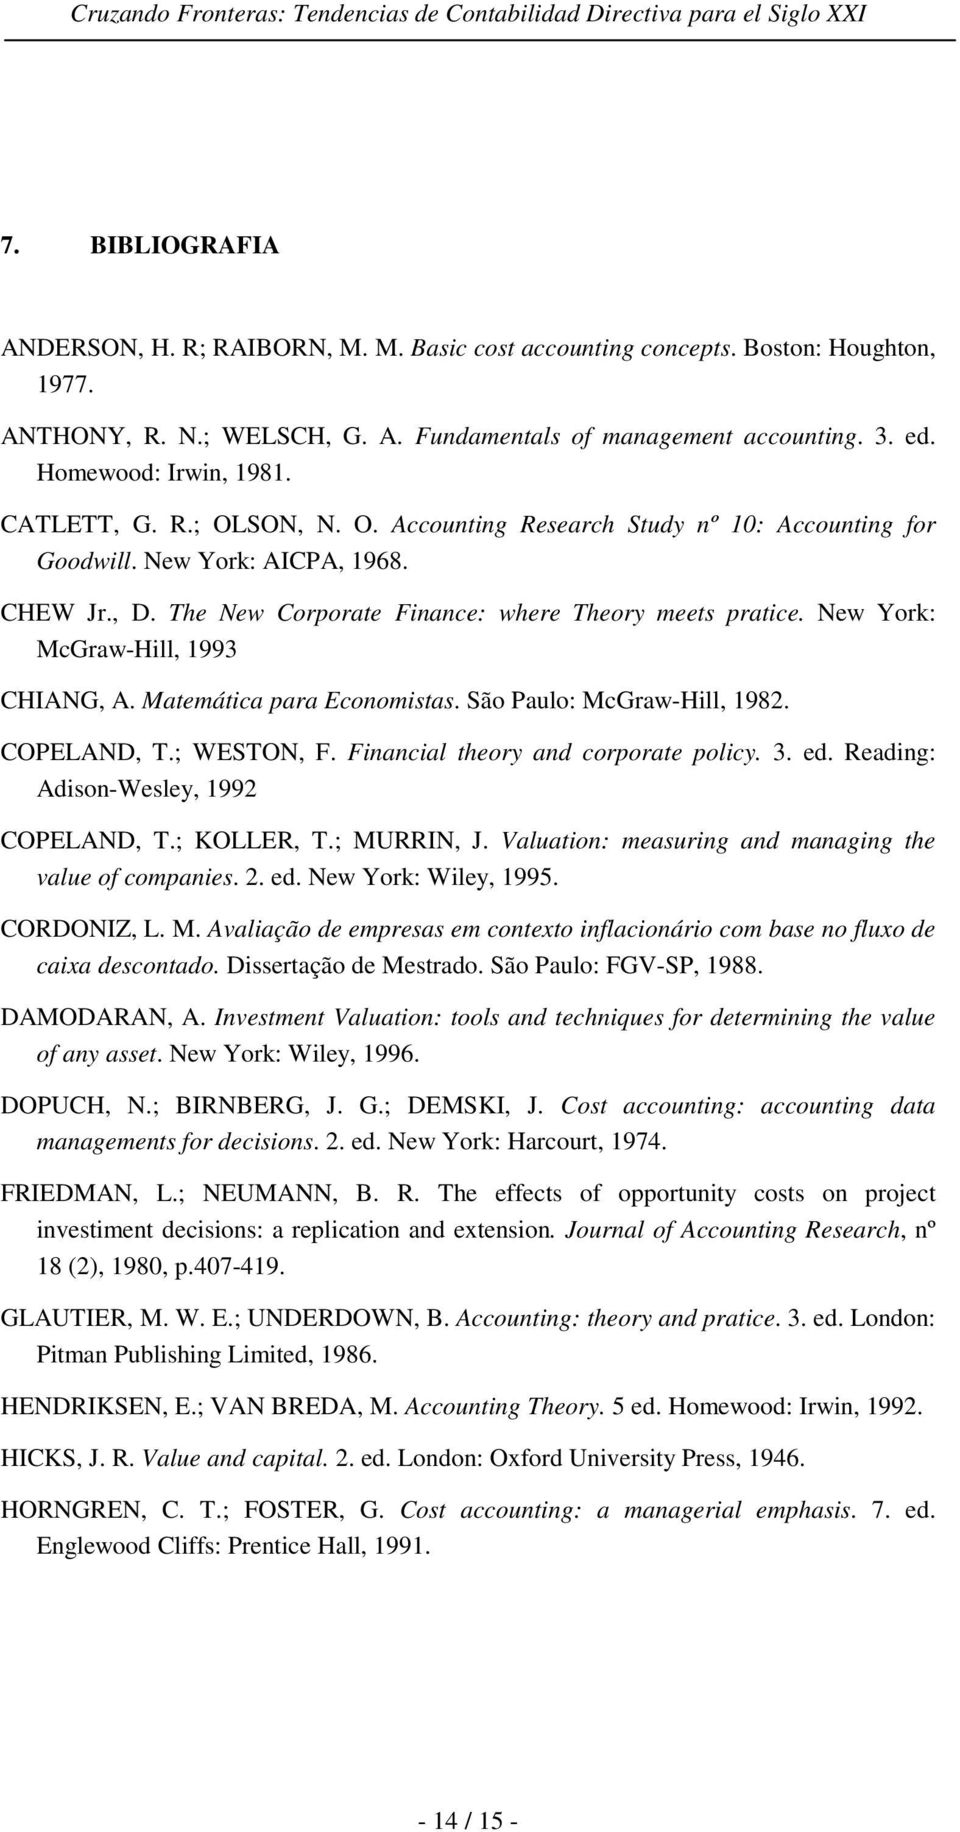 New York: McGraw-Hill, 1993 CHIANG, A. Matemática para Economistas. São Paulo: McGraw-Hill, 1982. COPELAND, T.; WESTON, F. Financial theory and corporate policy. 3. ed.